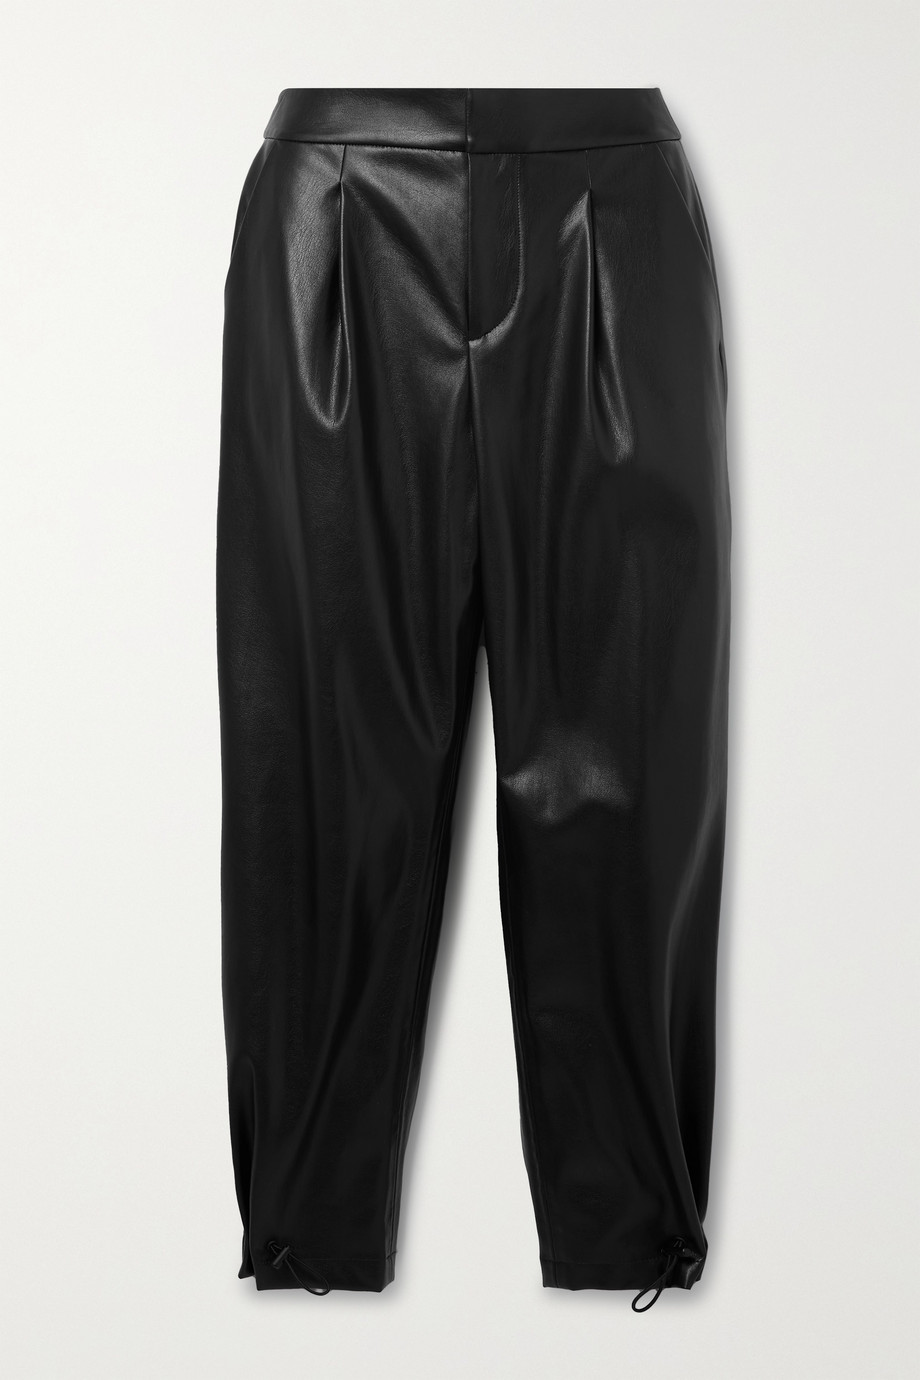 Alice + Olivia Paris pleated vegan leather tapered pants